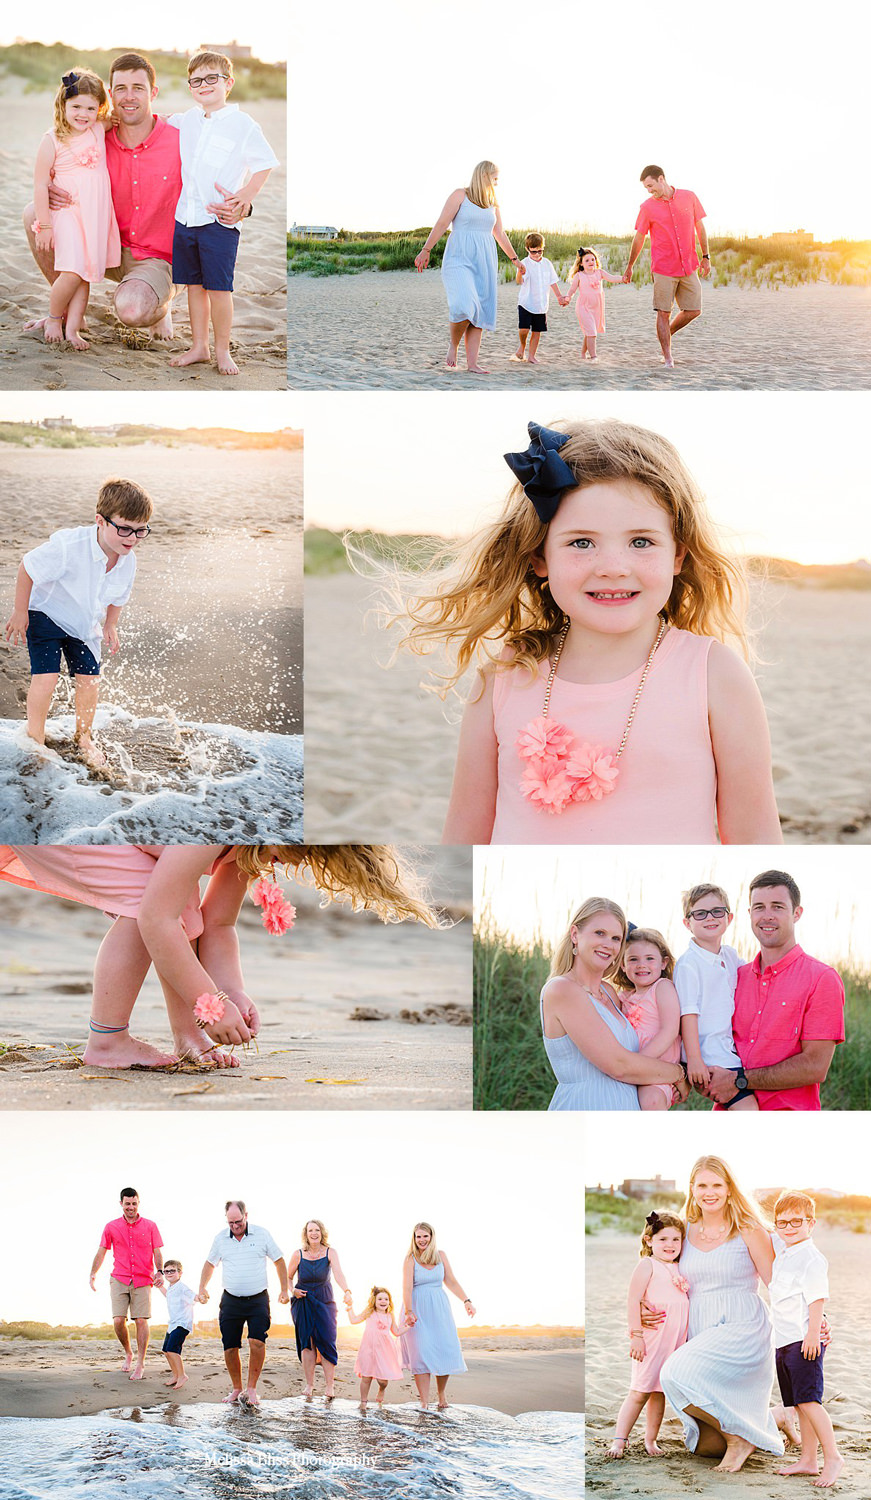 virignia-beach-family-beach-pictures-melissa-bliss-photography-vacation-photos.jpg